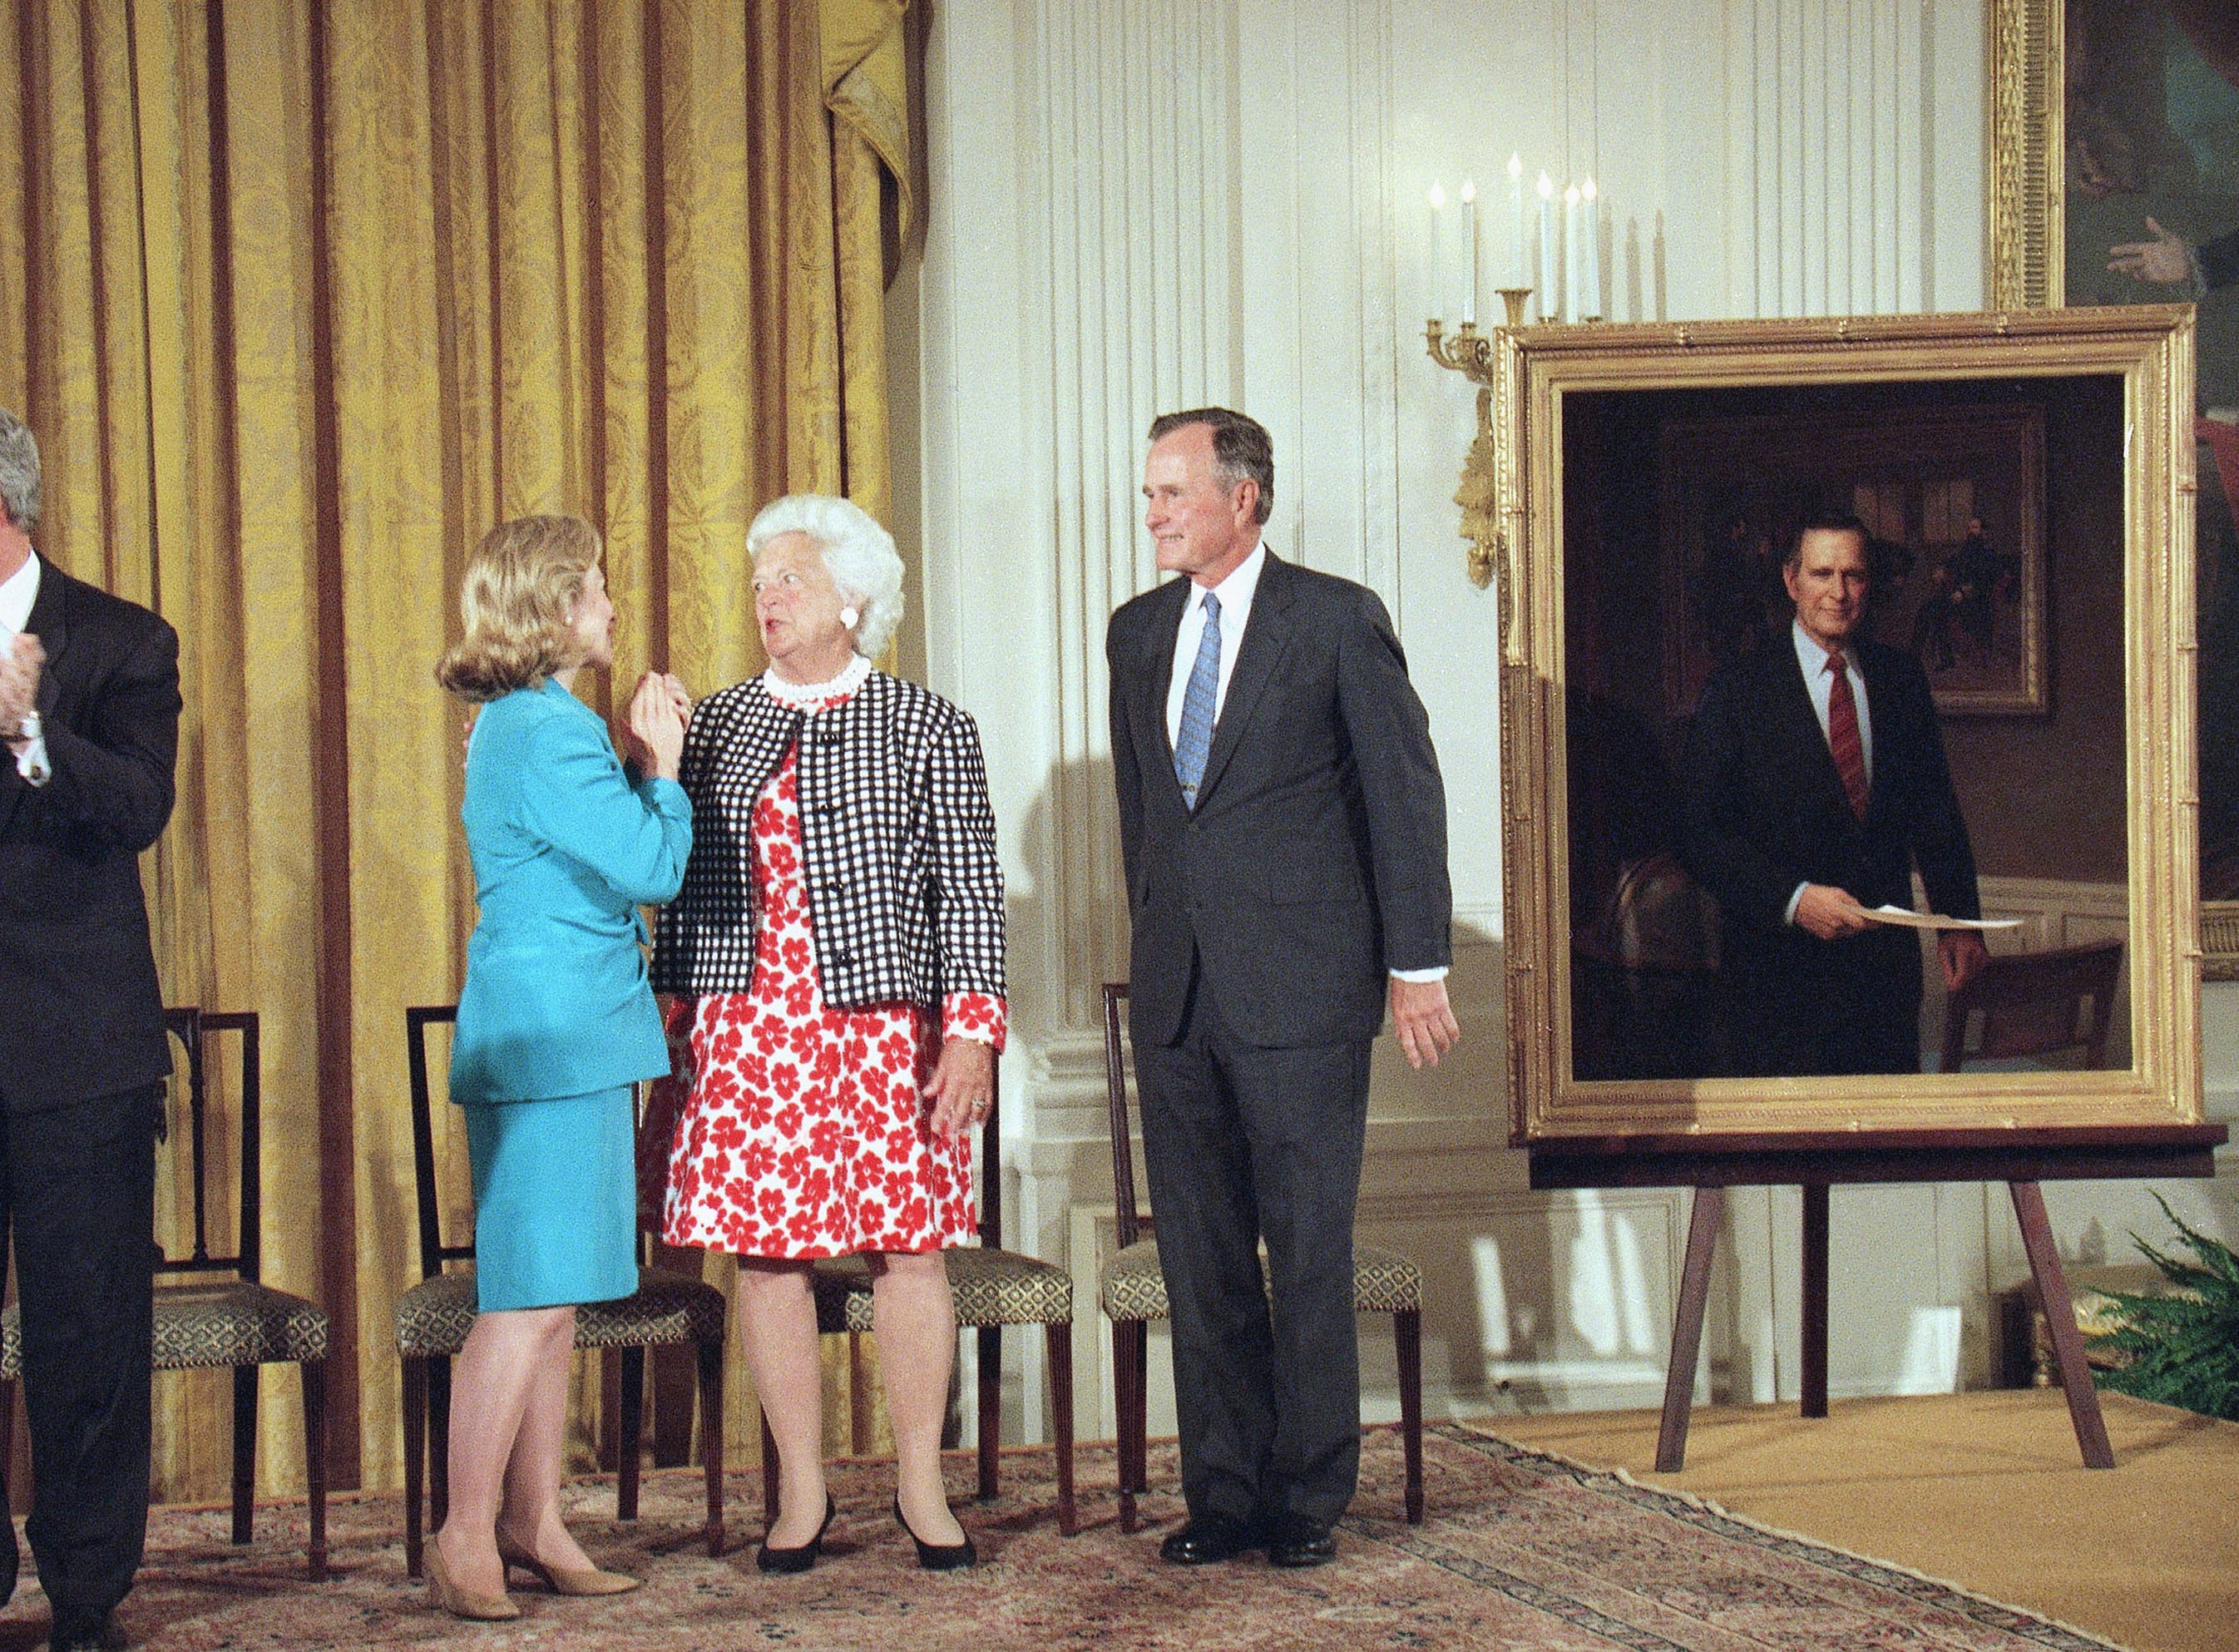 President Bill Clinton, left, and first lady Hillary Rodham Clinton, second from left, applaud former President George H.W. Bush, right, and his wife Barbara, after the Bushes official formal White House portrait was unveiled, in the East Room of the White House in Washington, Monday, July 17, 1995. Both the Bushes portraits, done by Herbert Abrams of Warren, Conn., were unveiled Monday. (AP Photo/Wilfredo Lee)